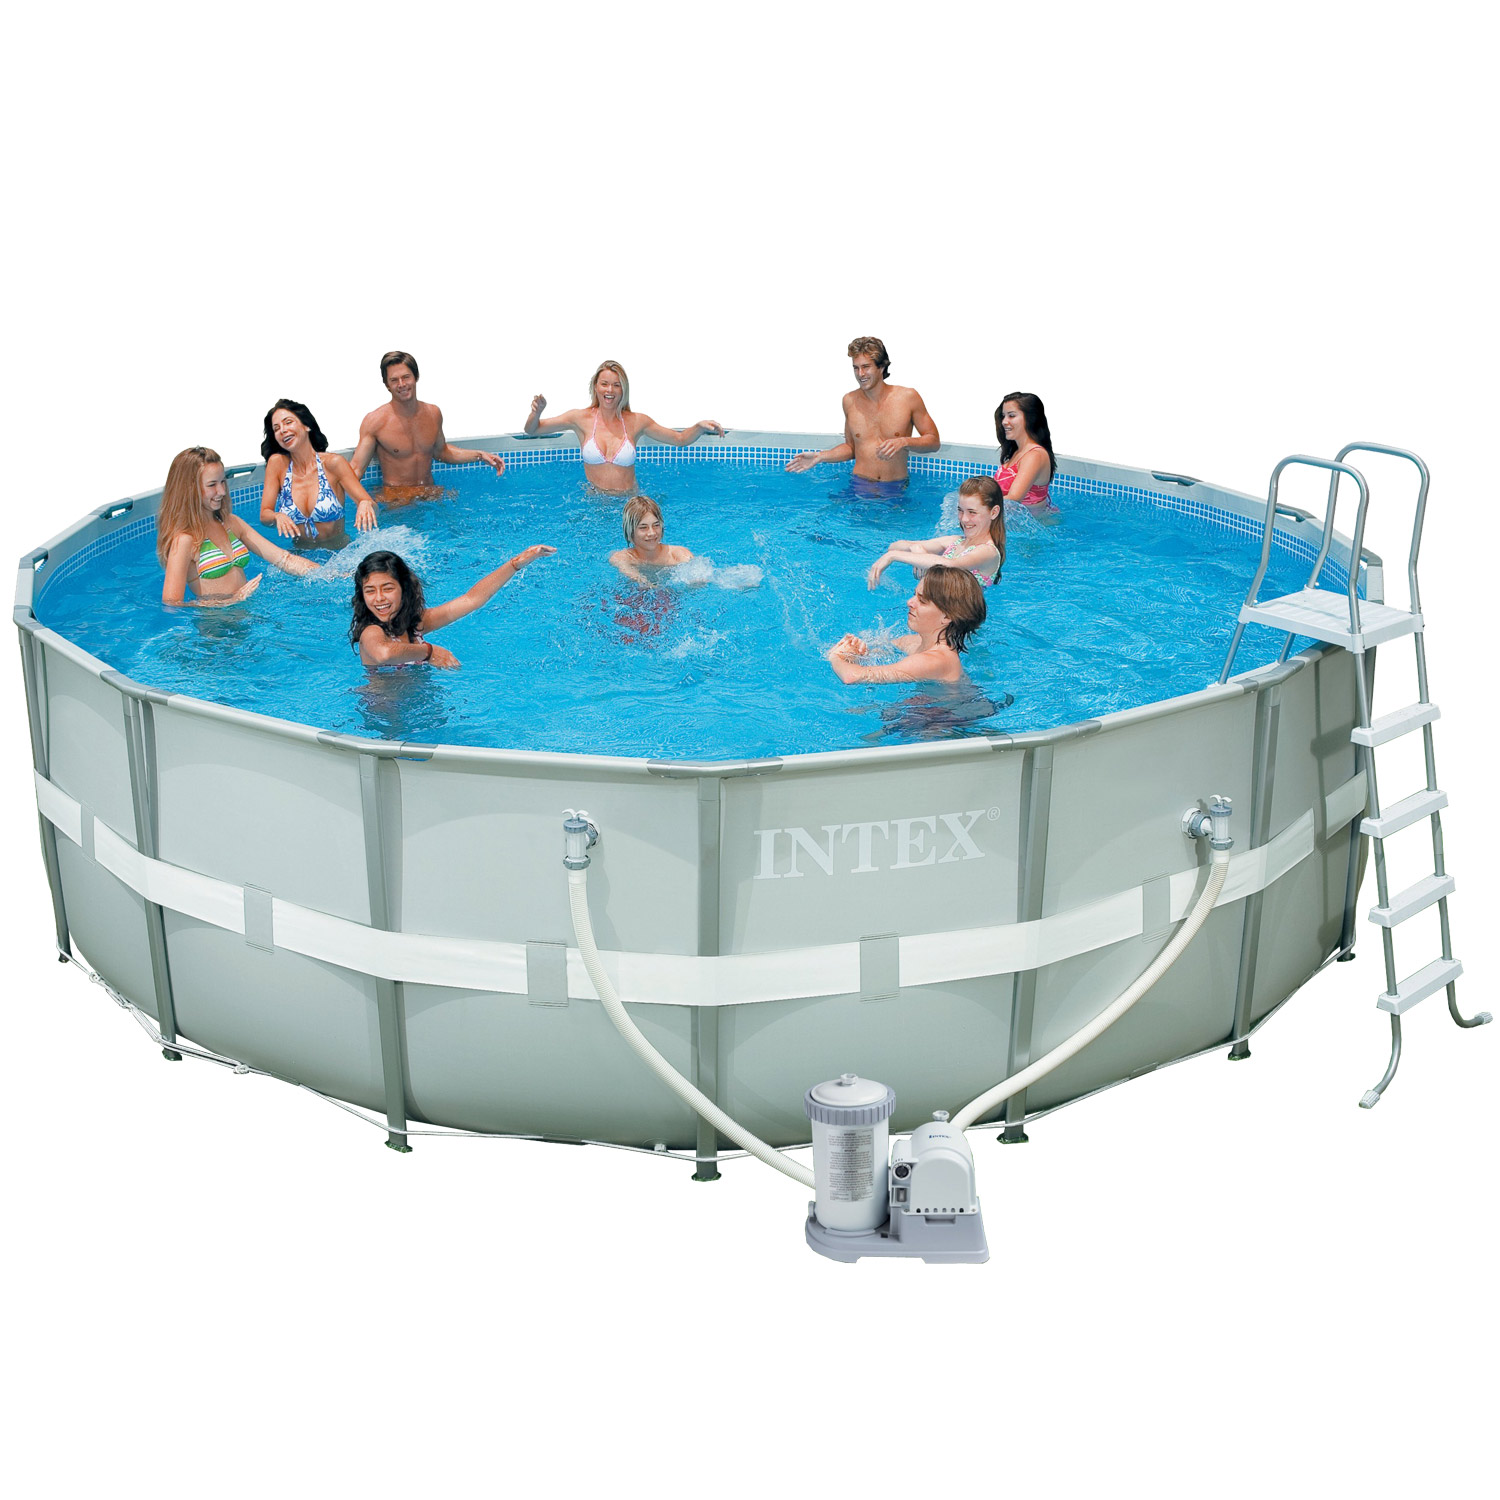 Intex swimming pool frame ultra rondo 488x122 cm komplettset - Swimming pool stahlwand ...